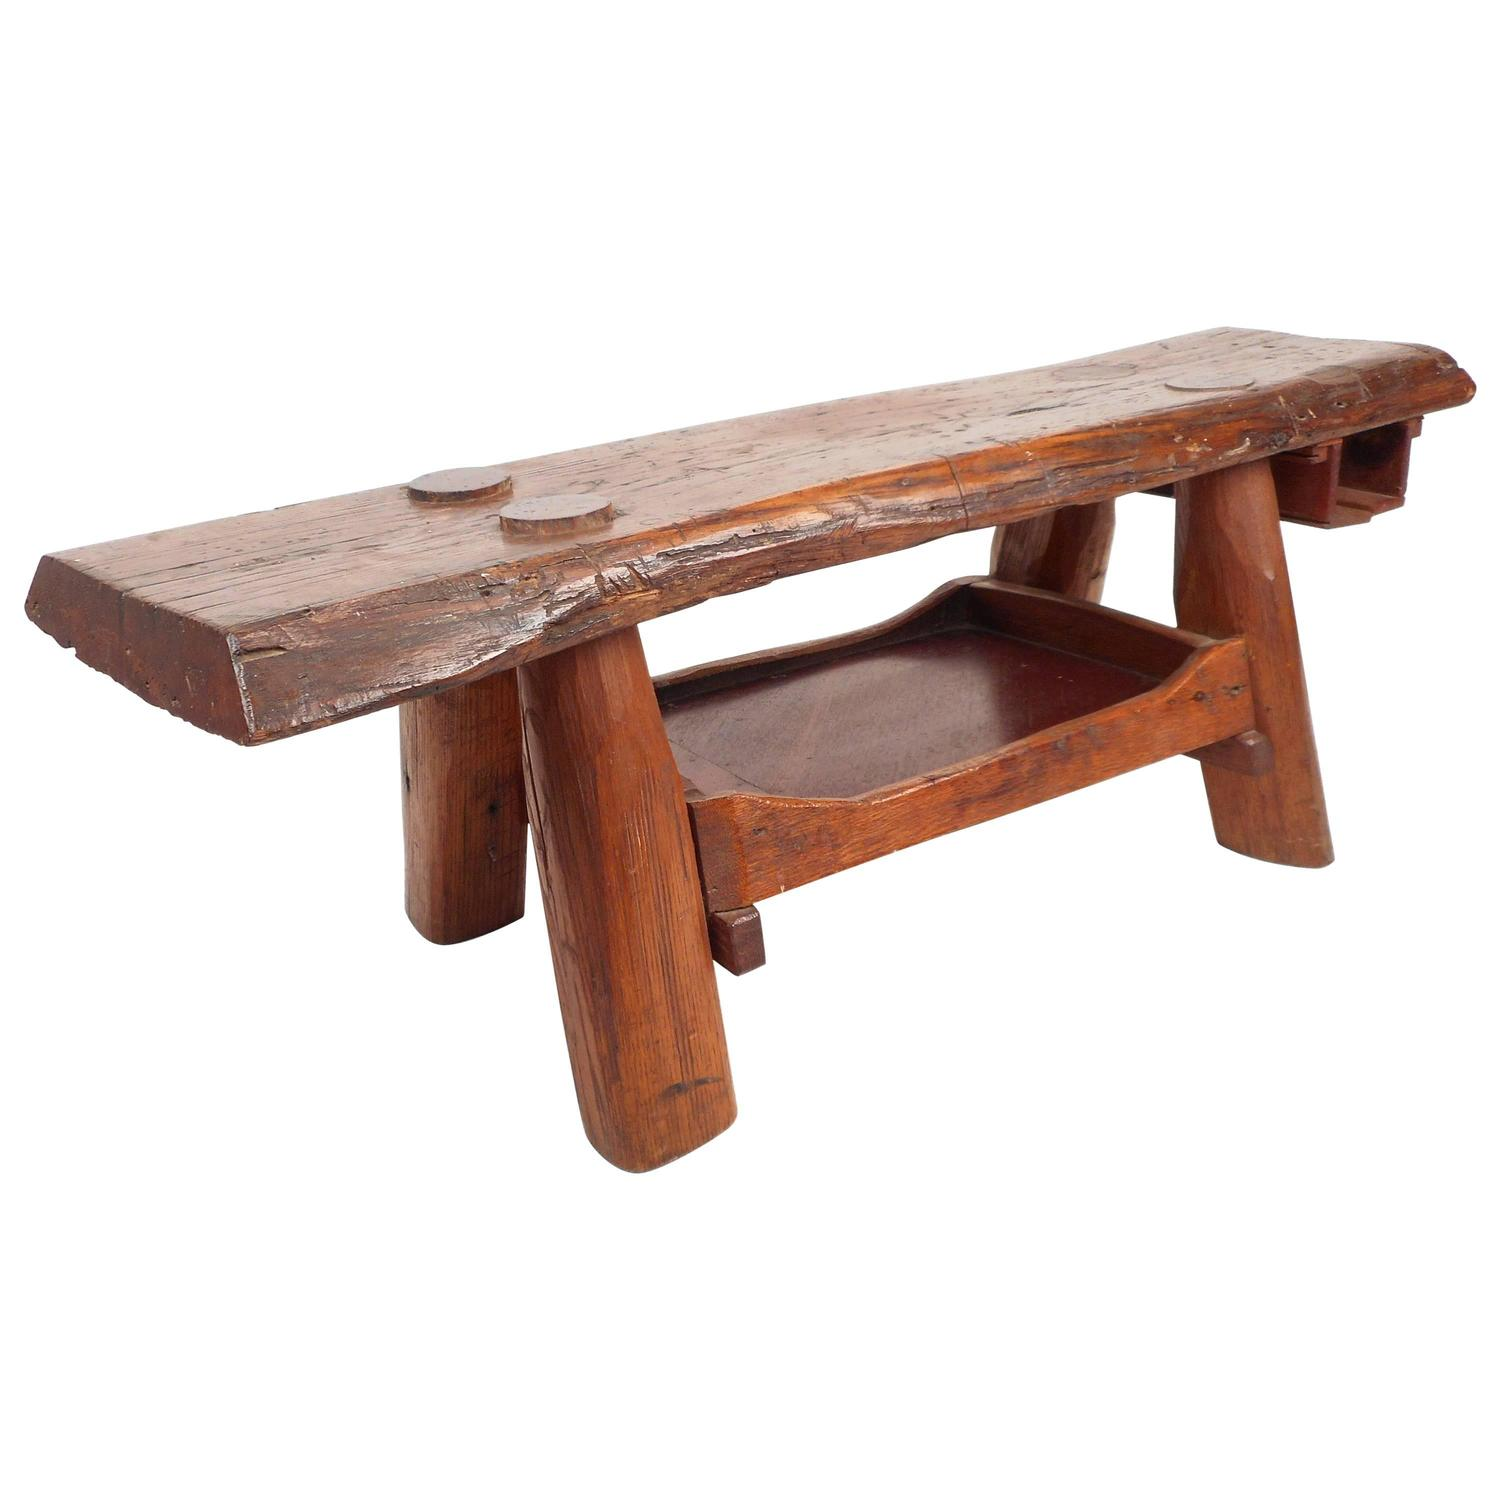 Mid Century Modern Tree Slab Coffee Table For Sale At 1stdibs: Mid-Century Modern Live Edge Cobbler Bench For Sale At 1stdibs